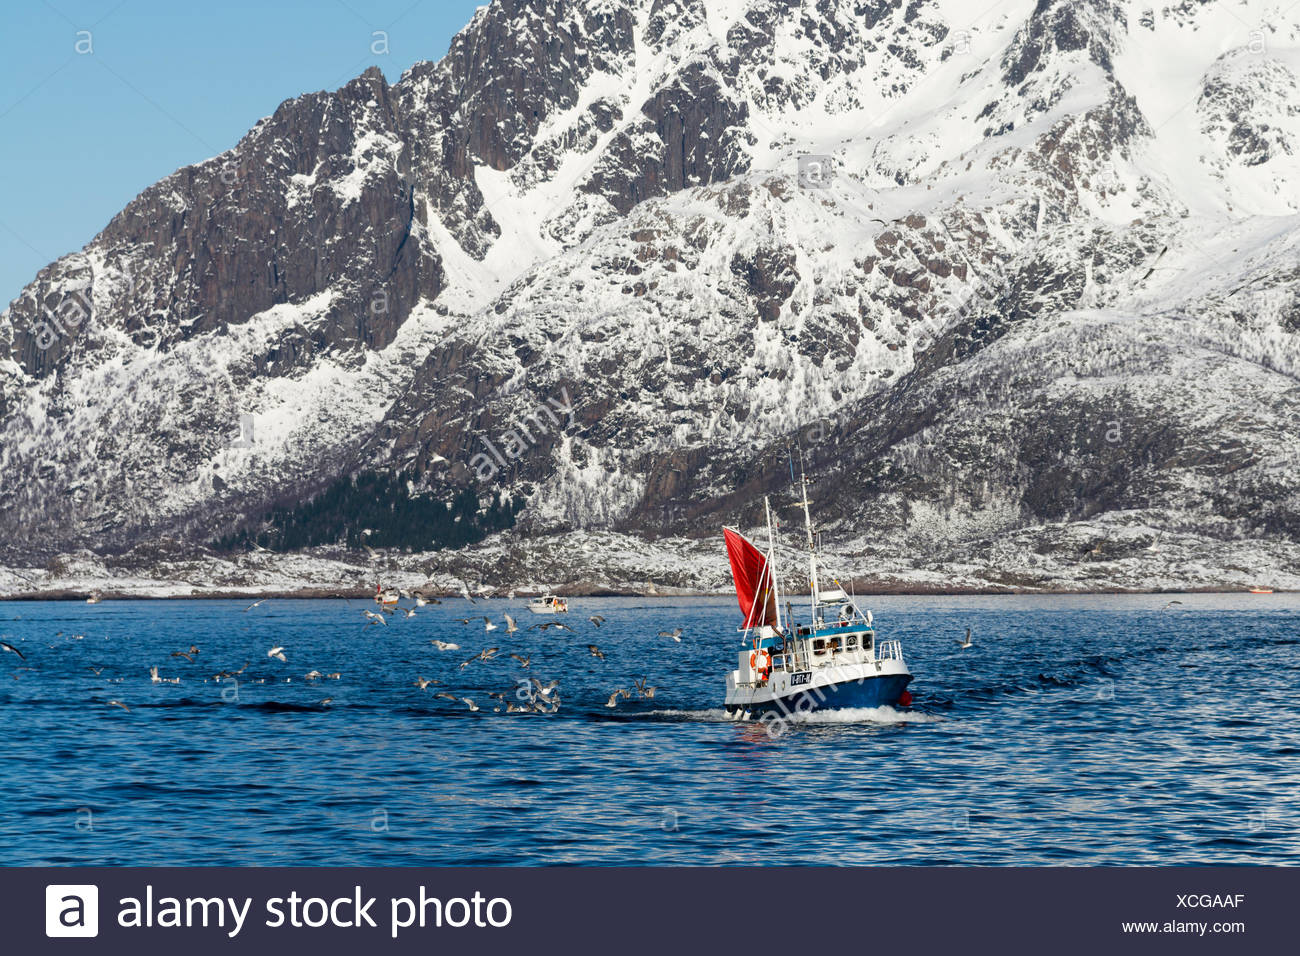 A fishing boat in Svolvaer Bay being followed by seabirds. - Stock Image